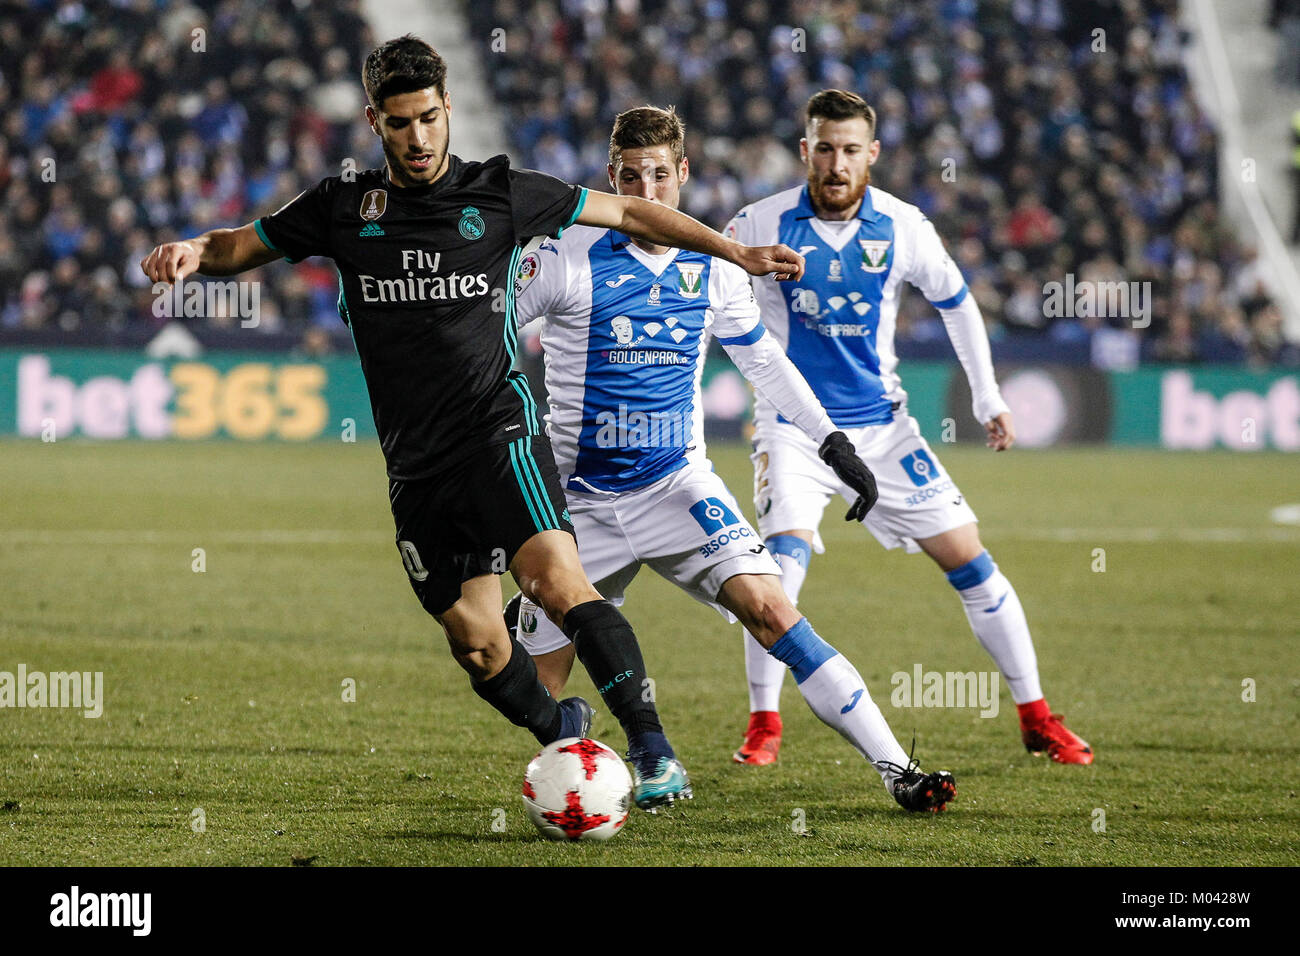 Marco Asensio (Real Madrid) drives forward on the ball Copa del Rey ...